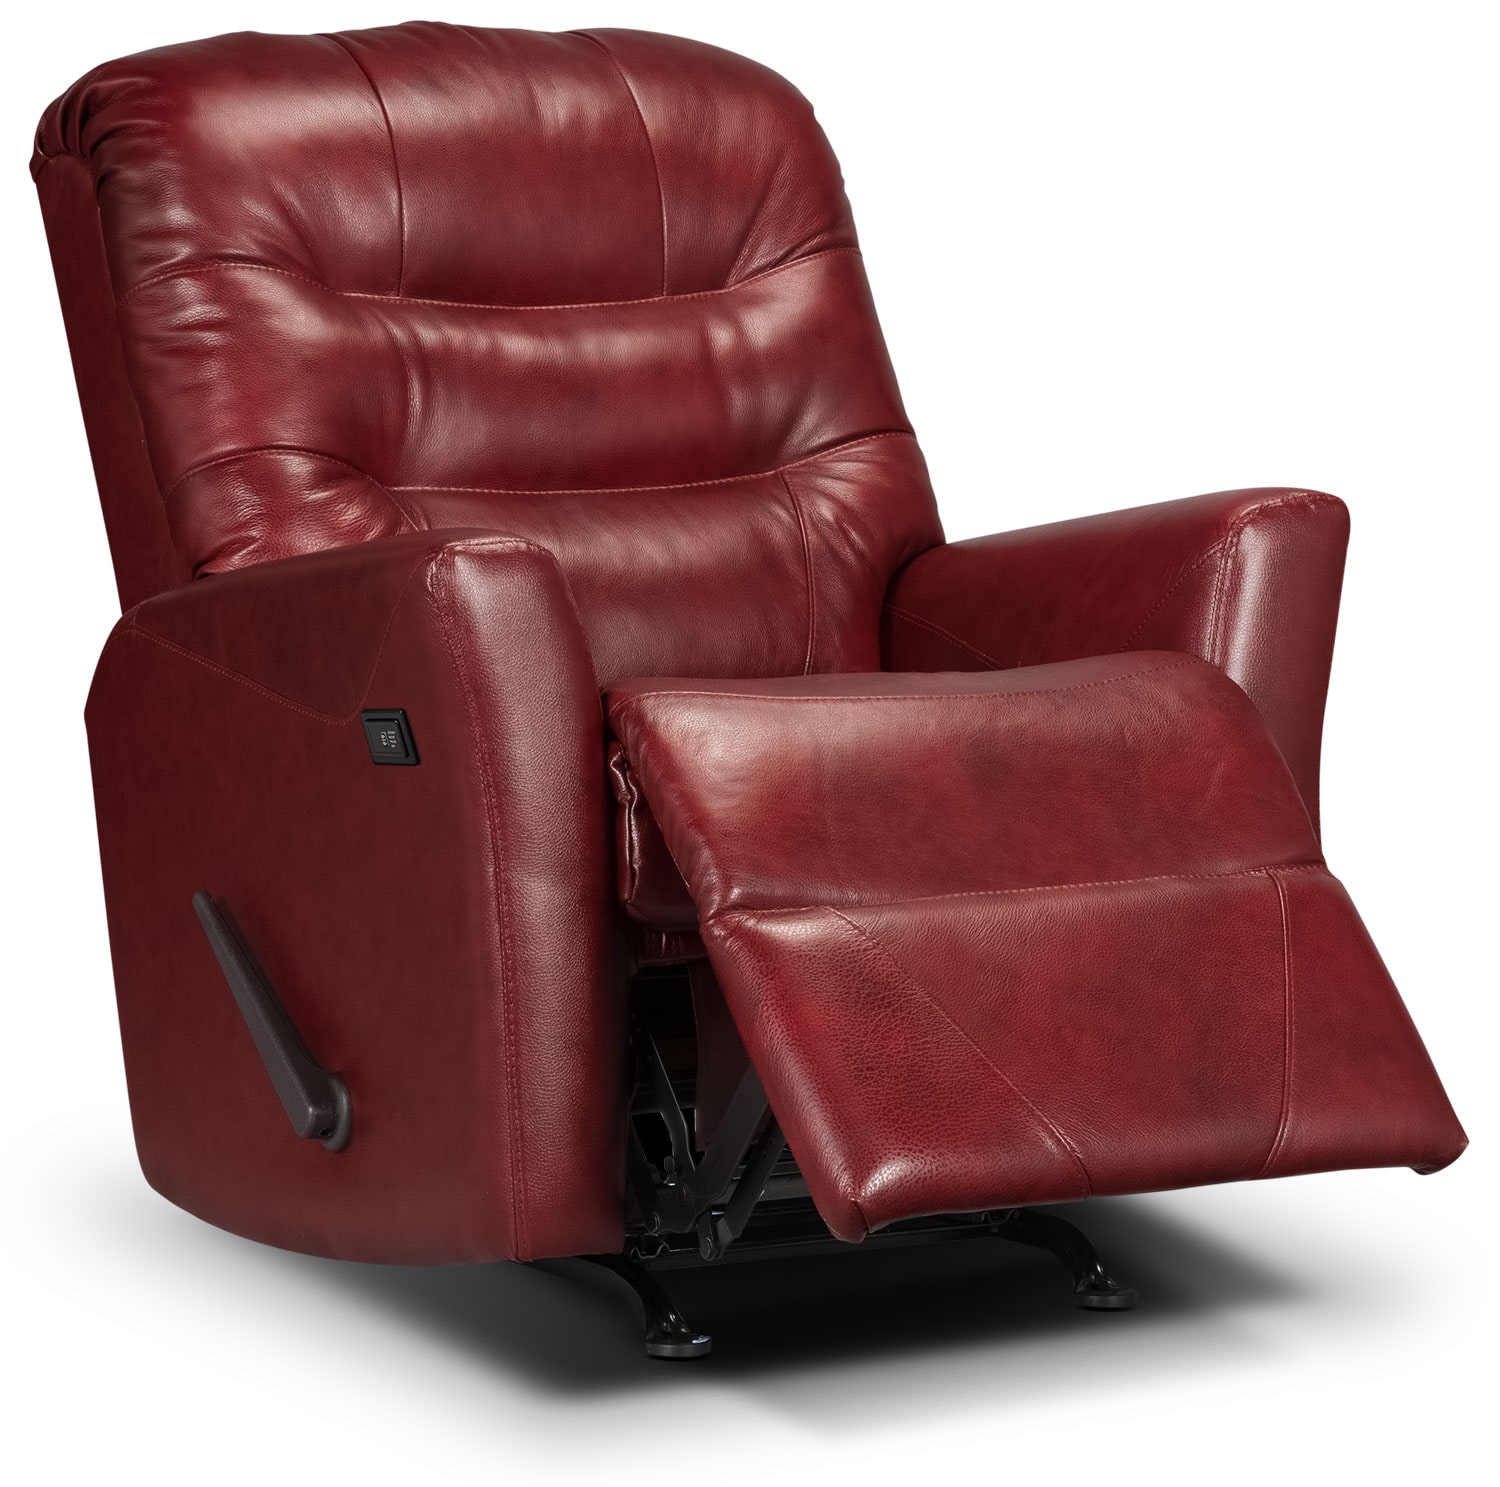 Living Room Furniture - Designed2B Recliner 4560 Genuine Leather Massage Recliner - Paprika